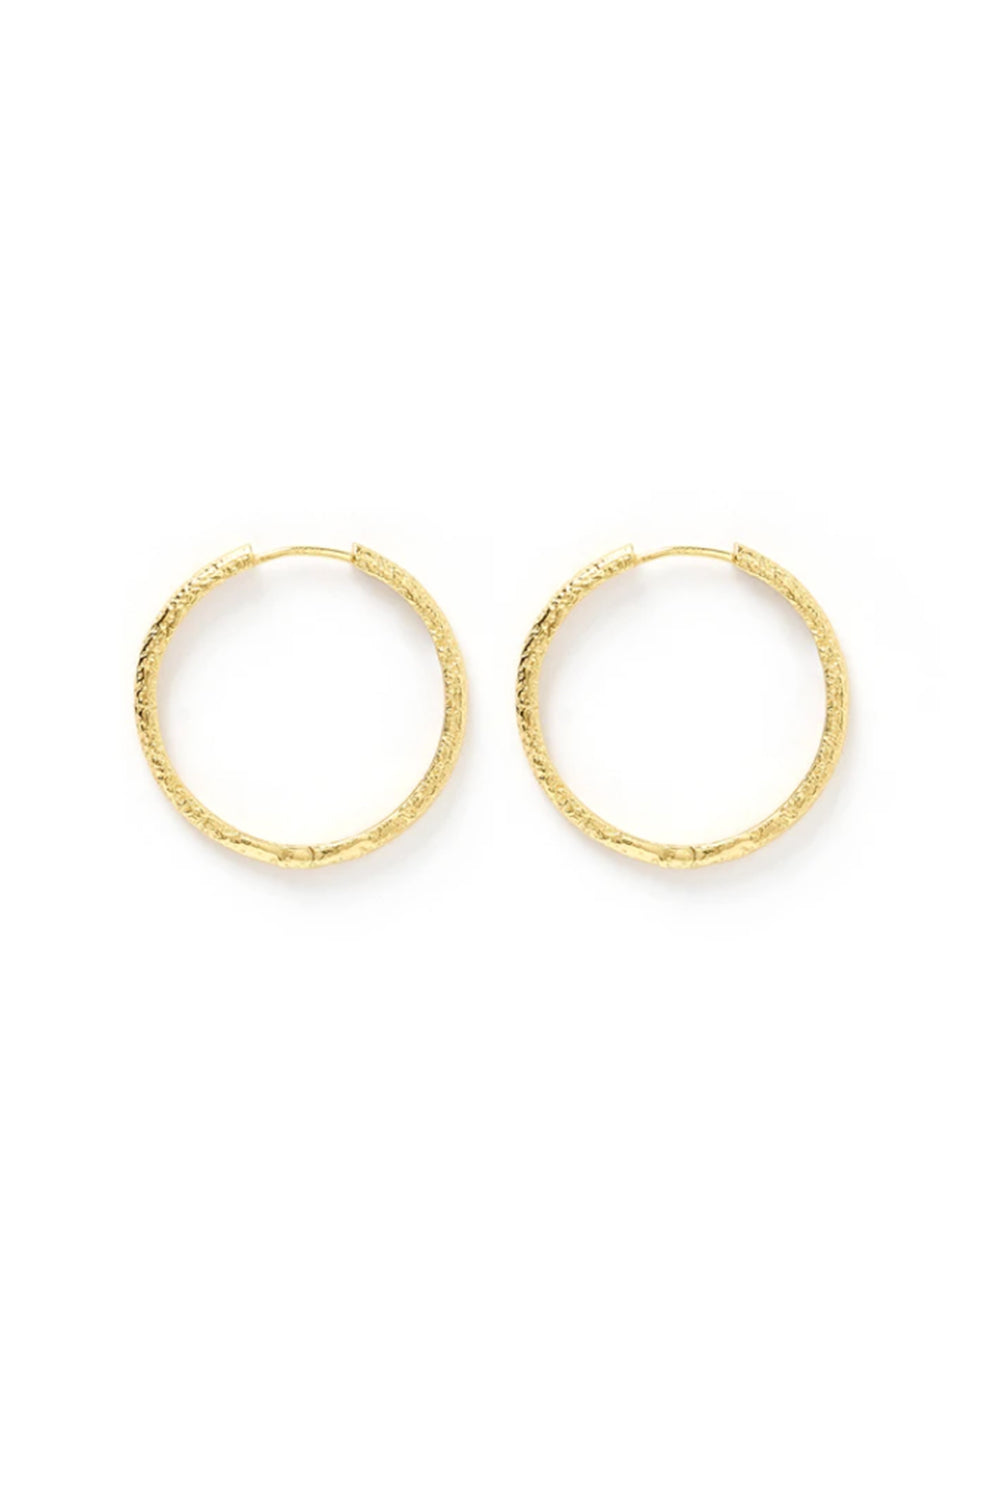 ARMS OF EVE - Sebastian Gold Hoops